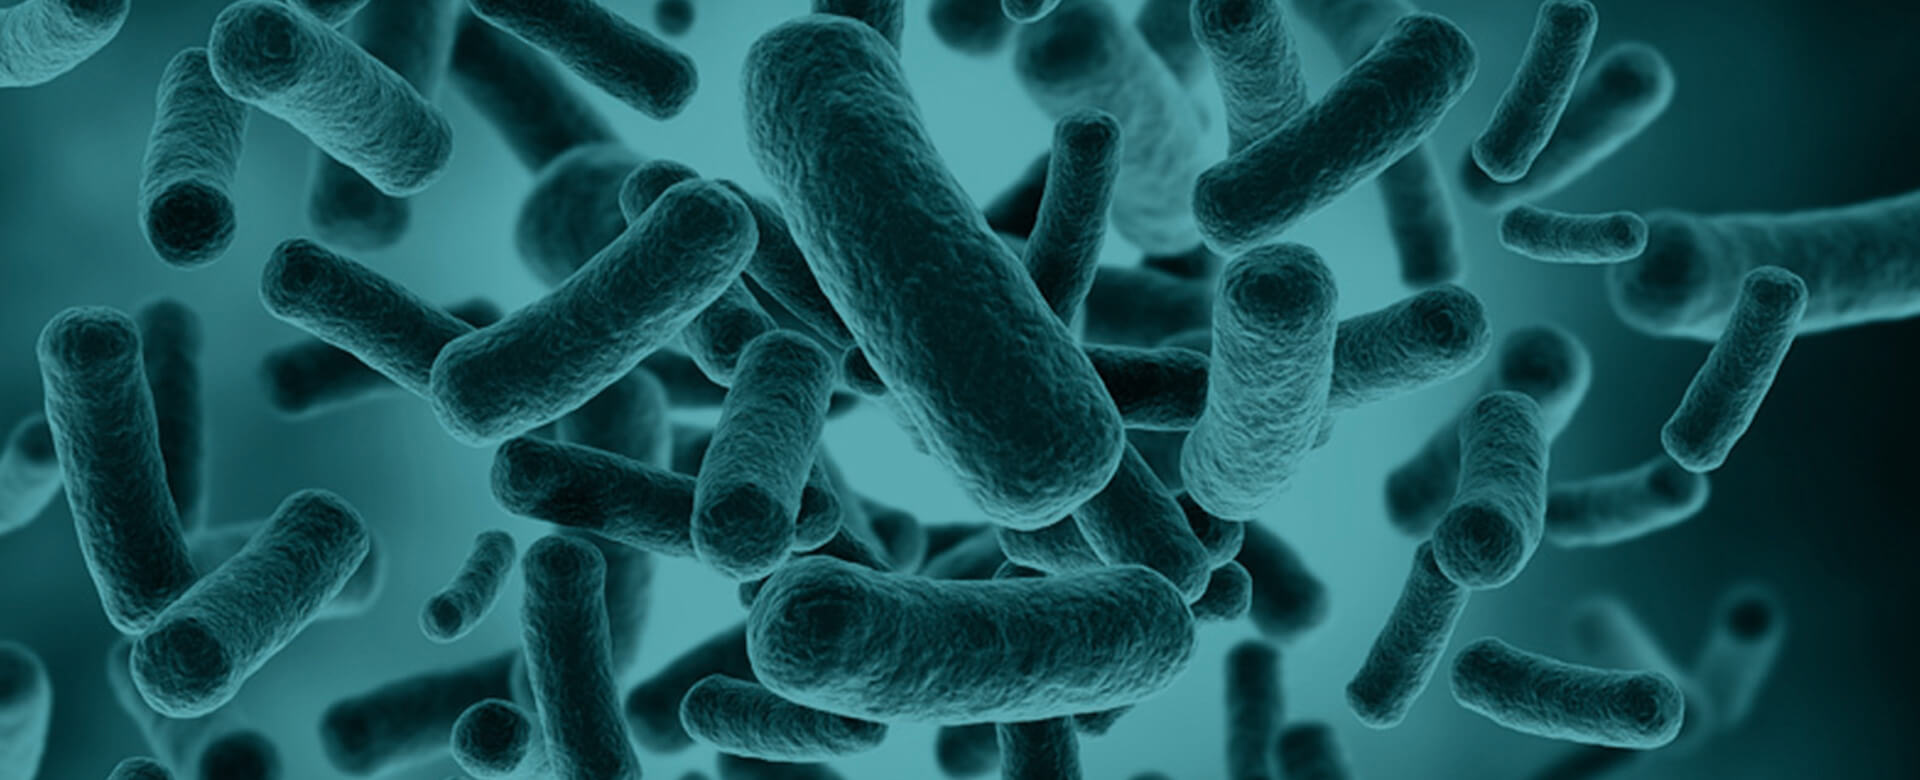 Microbiome analysis, a new tool against age-related diseases